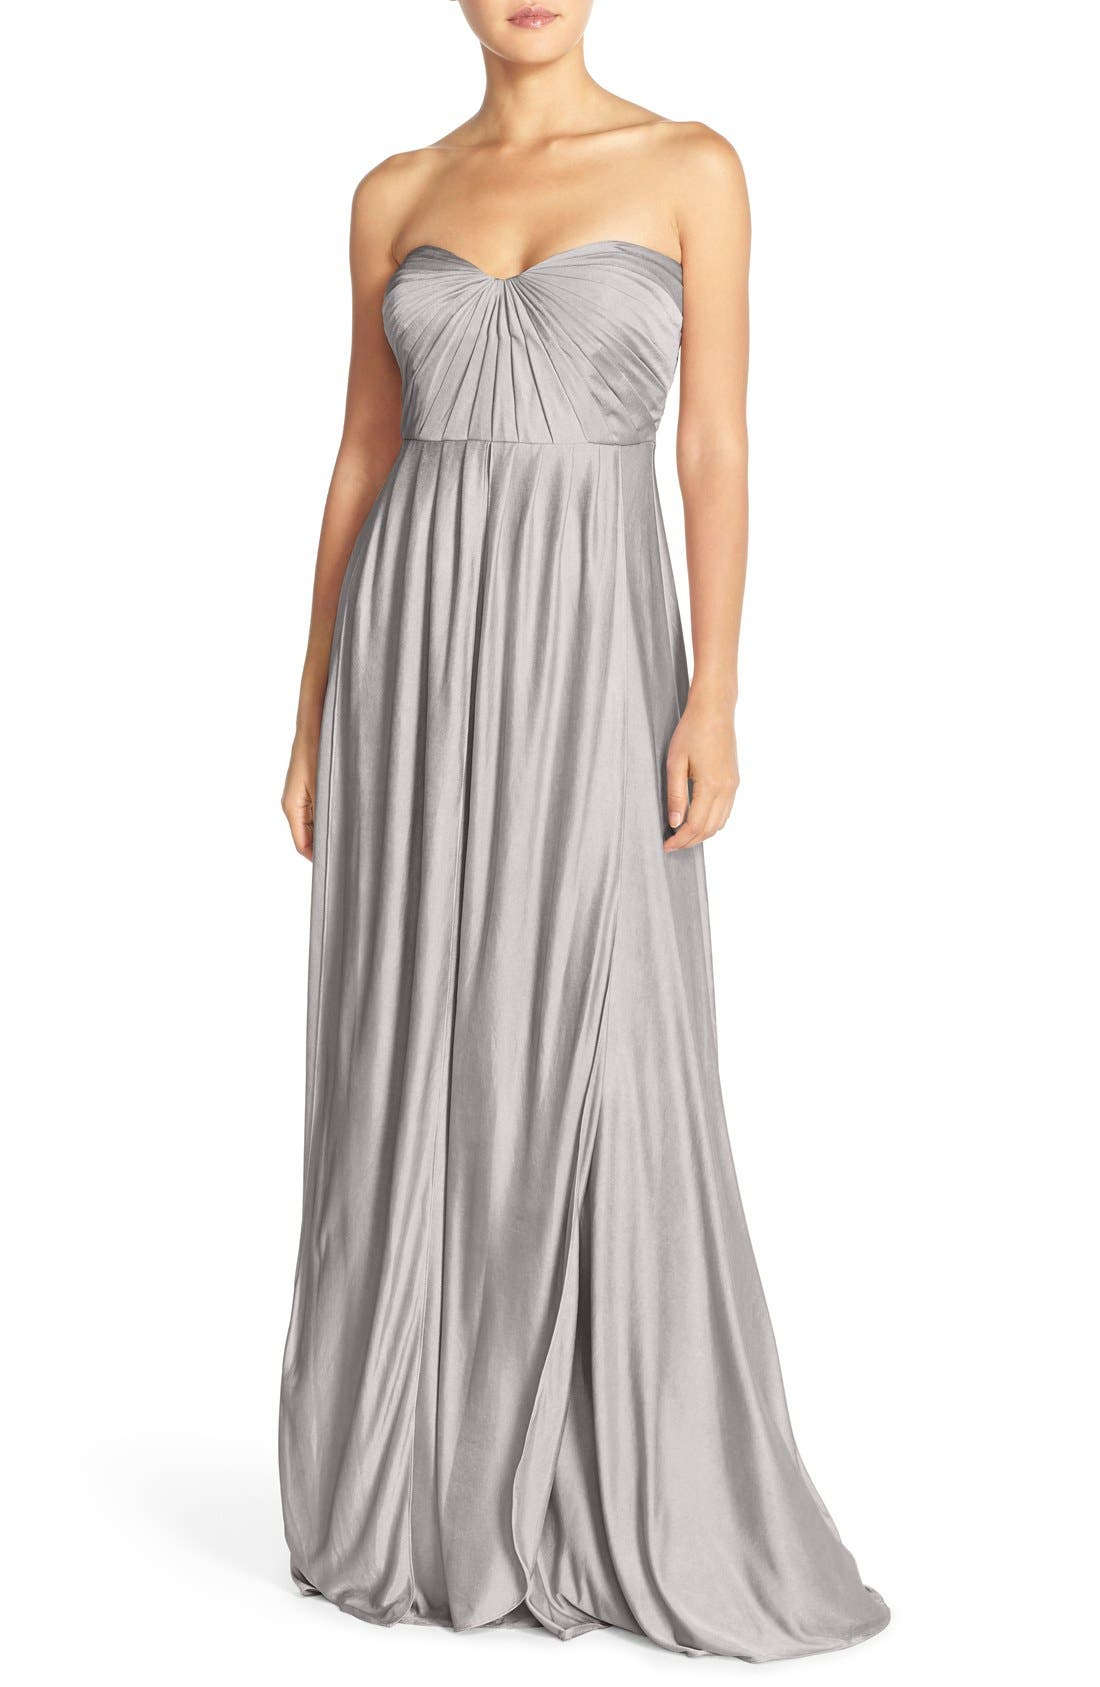 Main Image - Jenny Yoo 'Demi' Convertible Strapless Pleat Jersey Gown